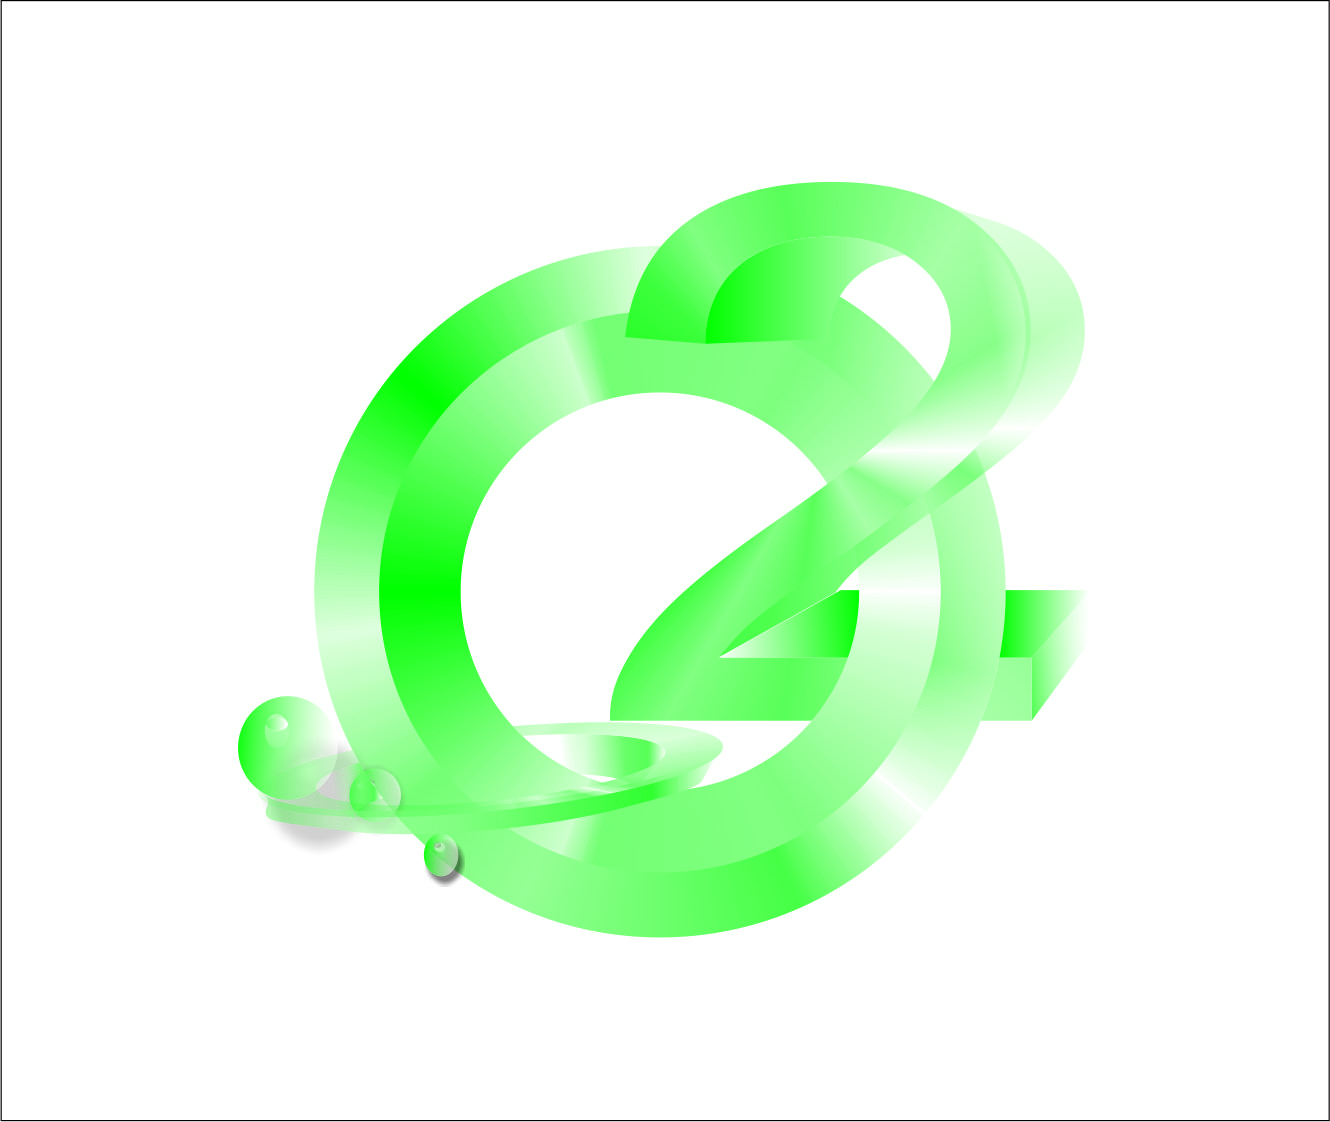 Logo Design by Agus Martoyo - Entry No. 70 in the Logo Design Contest Artistic Logo Design for O2.